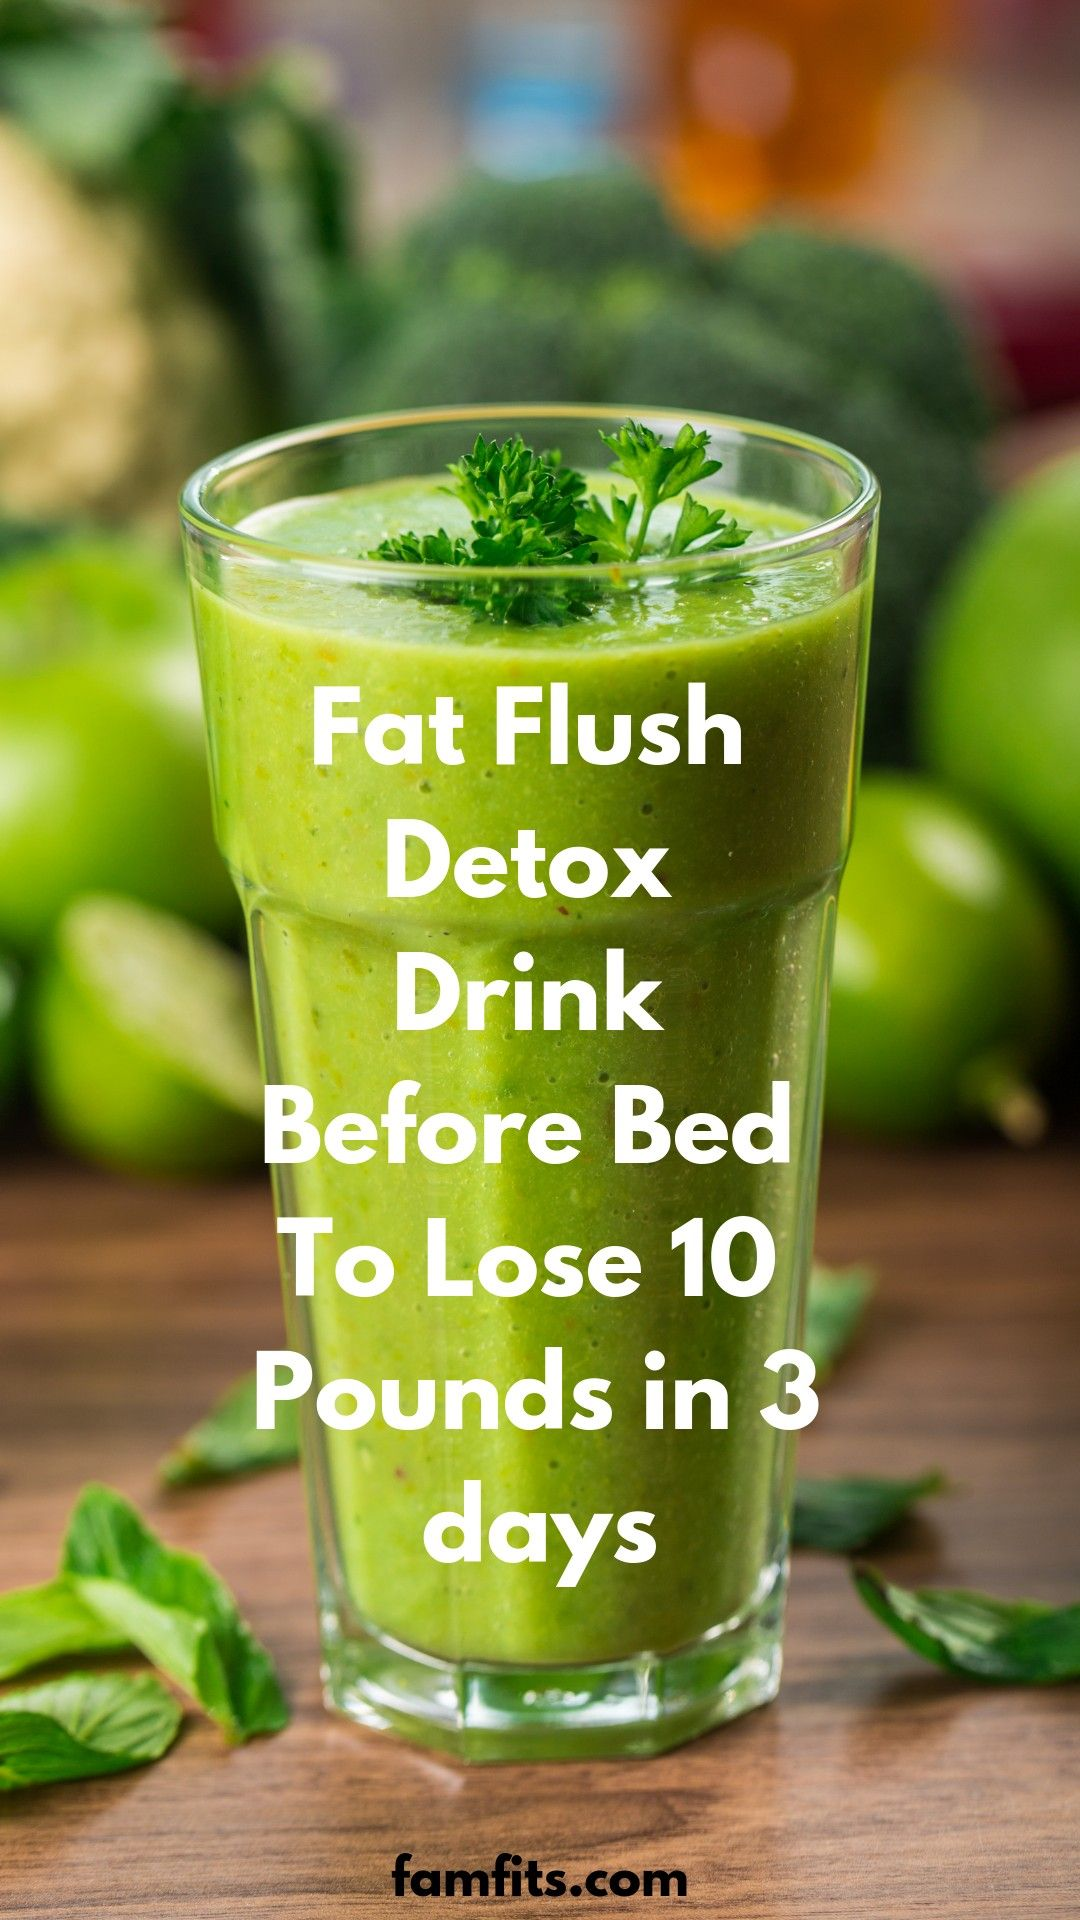 Fat flush detox drinks